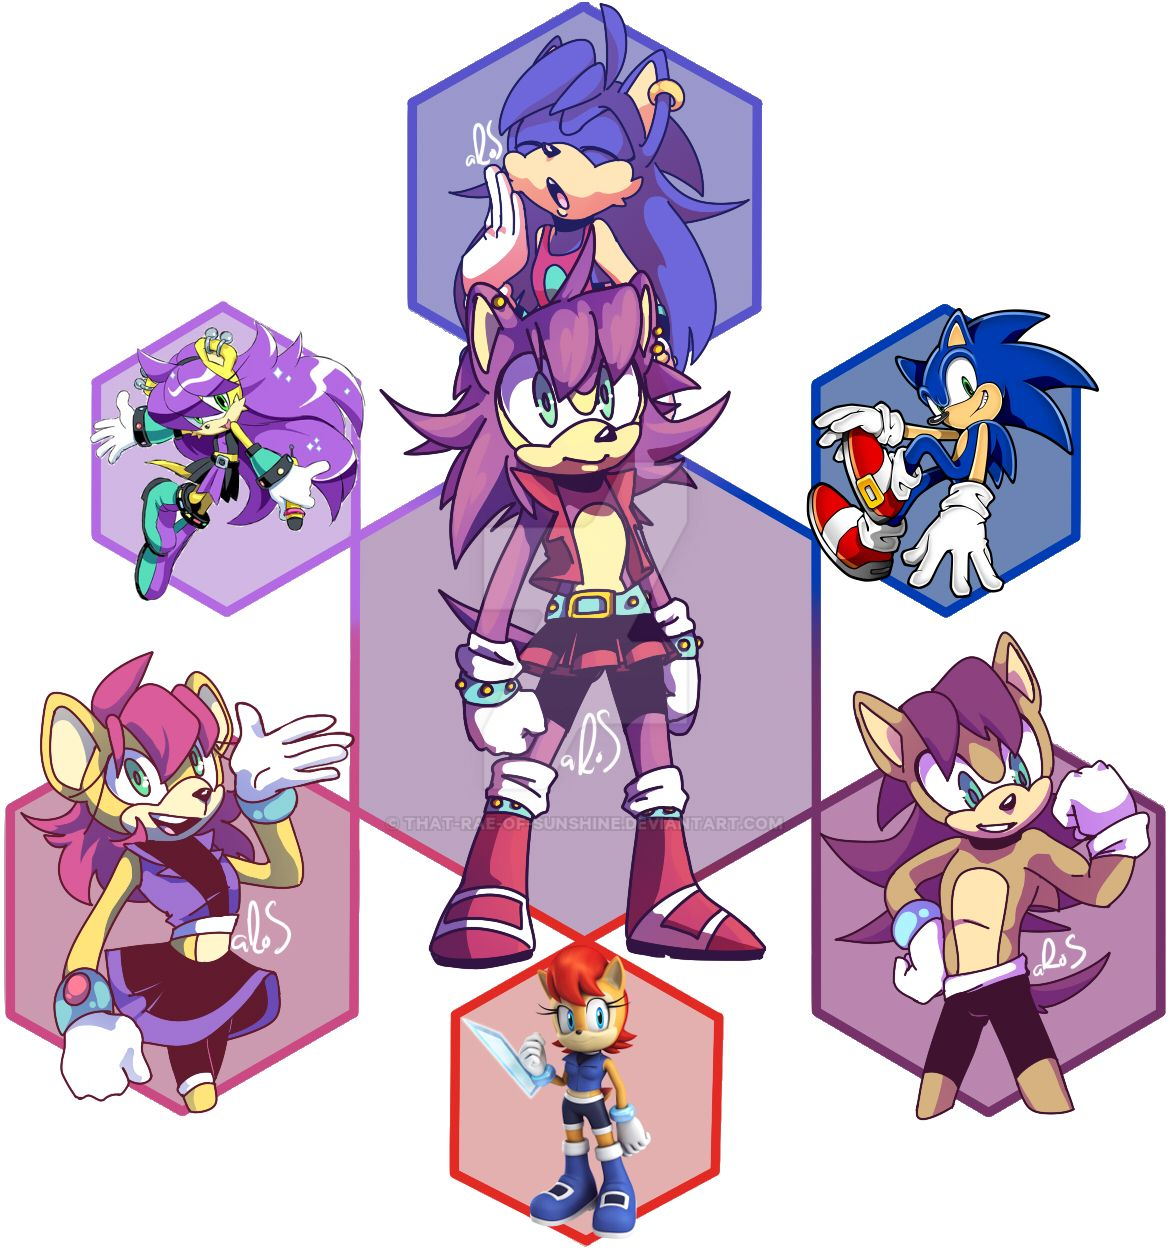 Hexafusion | Dodged a Bullet by that-rae-of-sunshine on DeviantArt